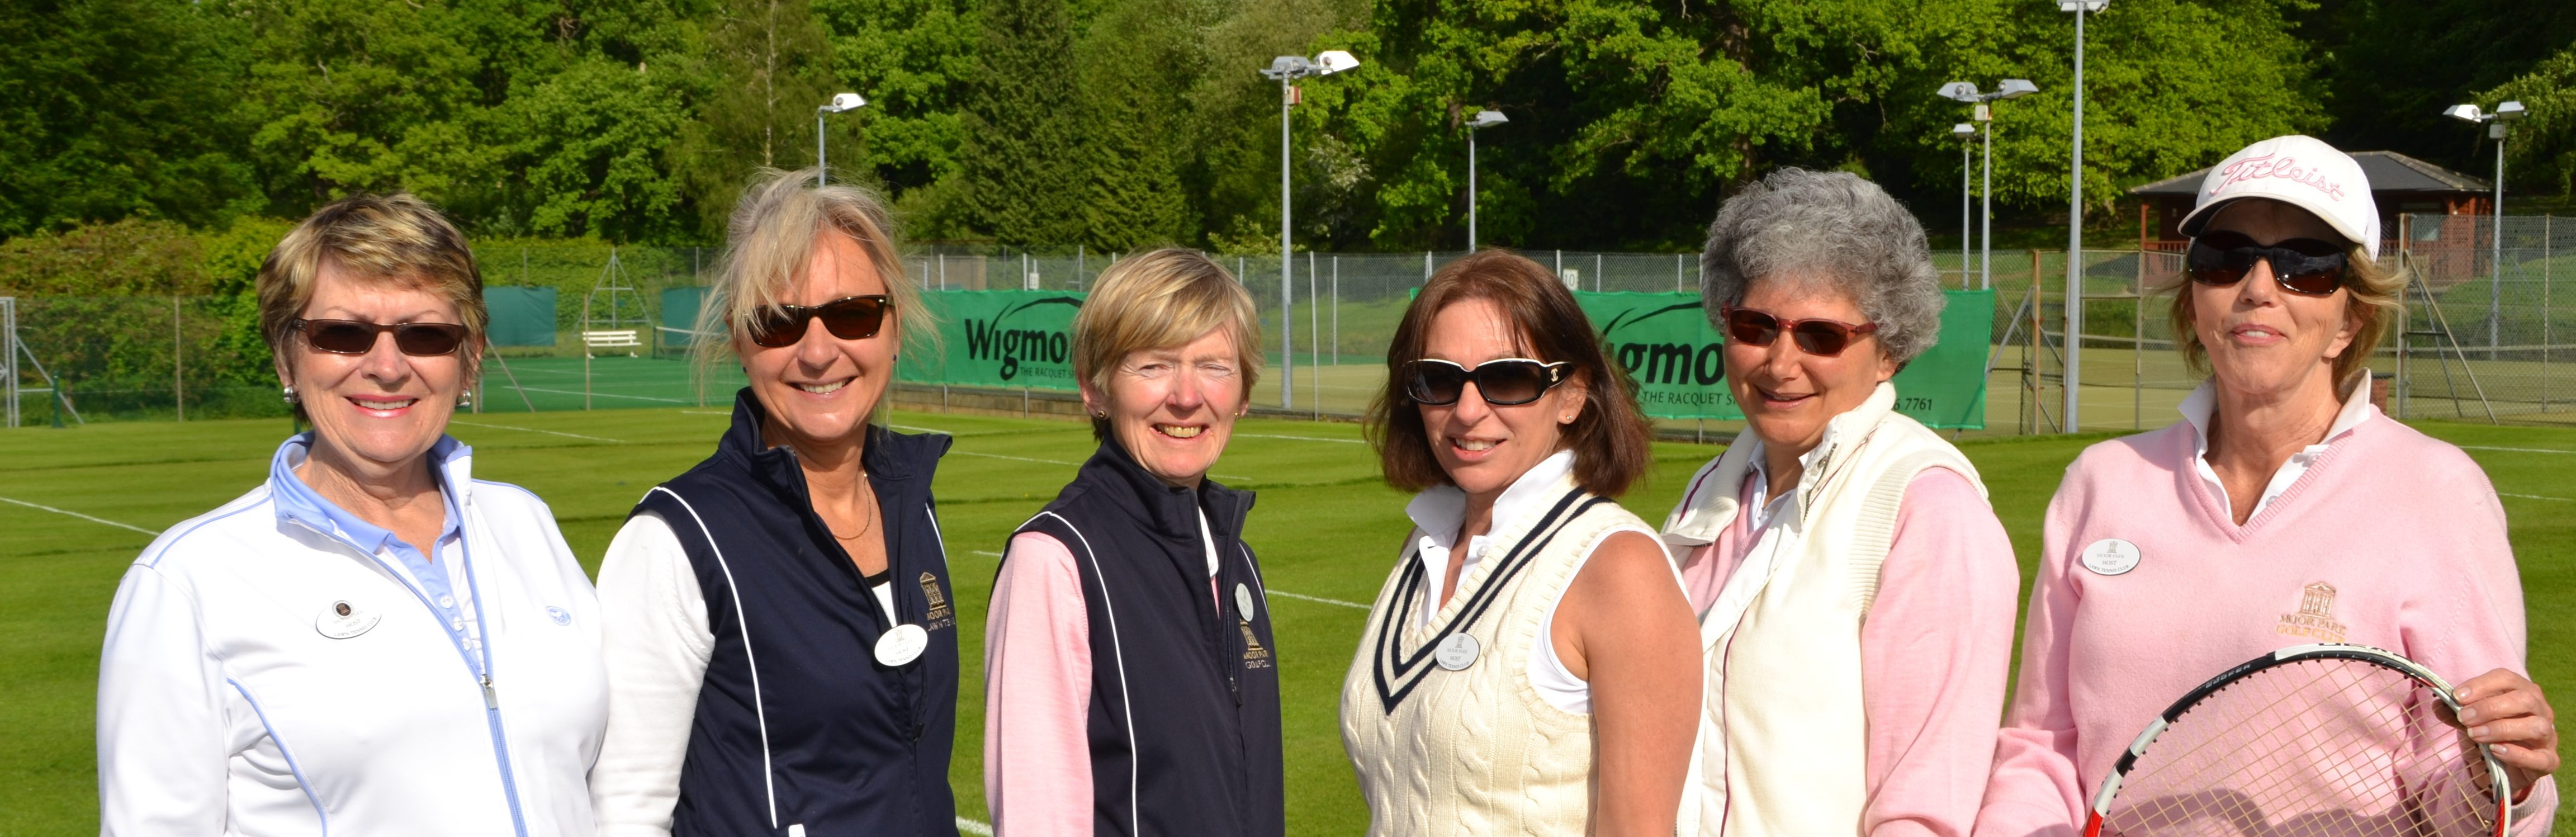 Old ladies photo after tennis match